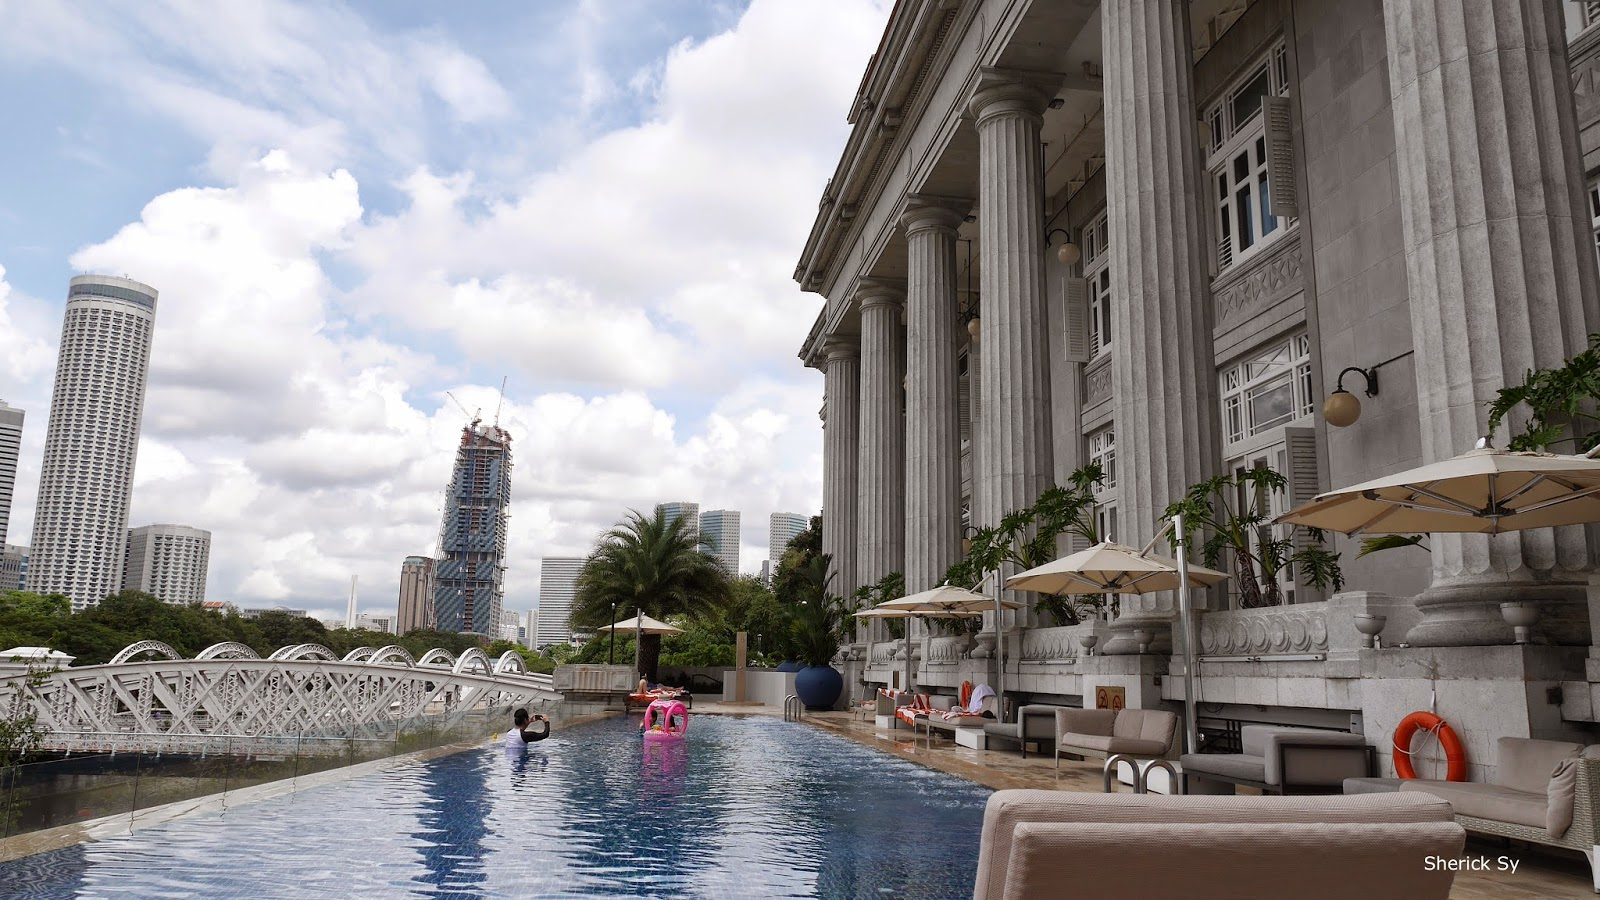 Swimming Pool at Fullerton Hotel, Singapore